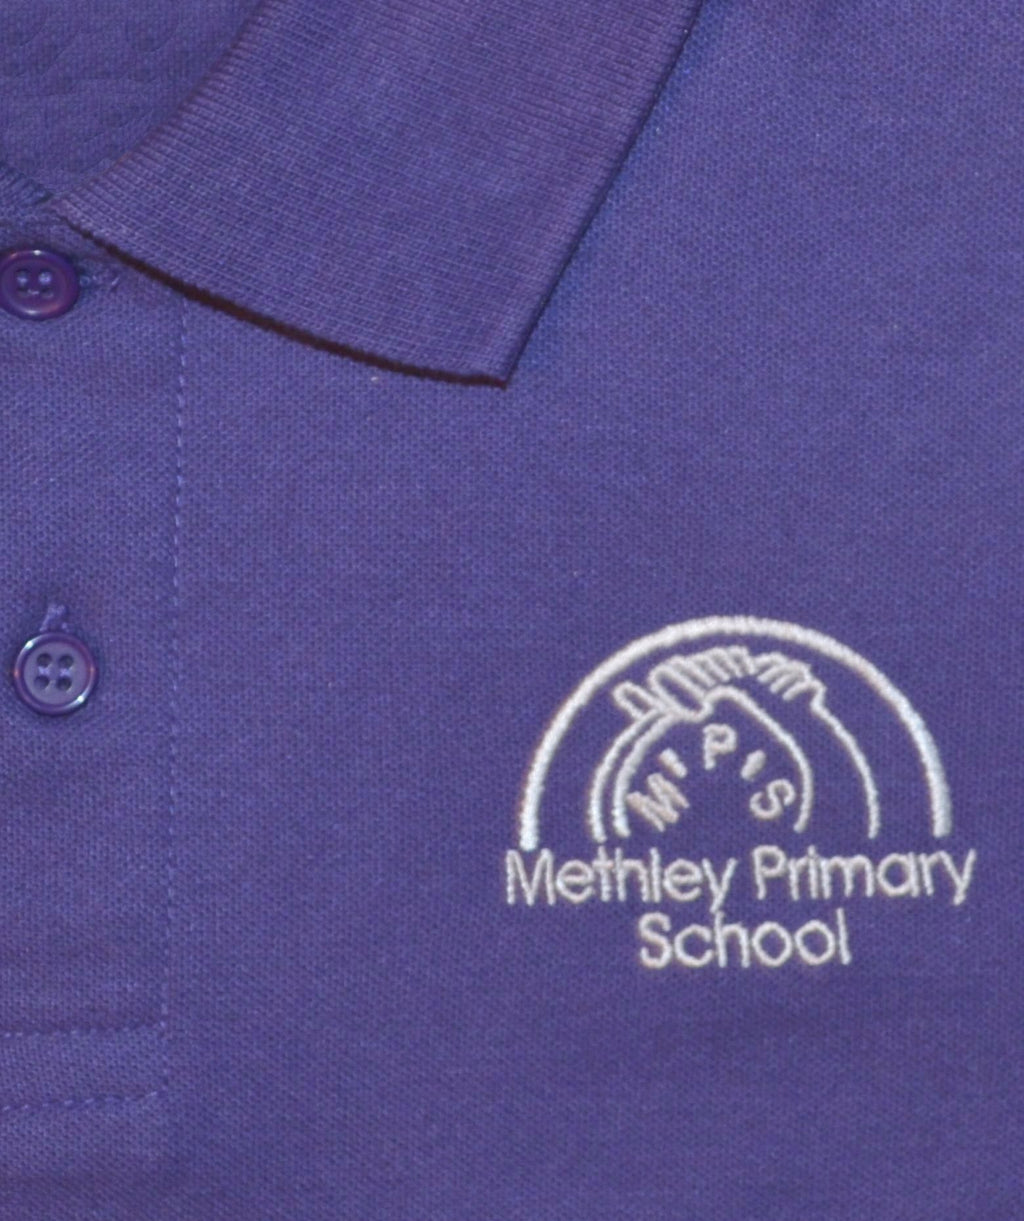 Methley Primary School Uniform Bundle 5